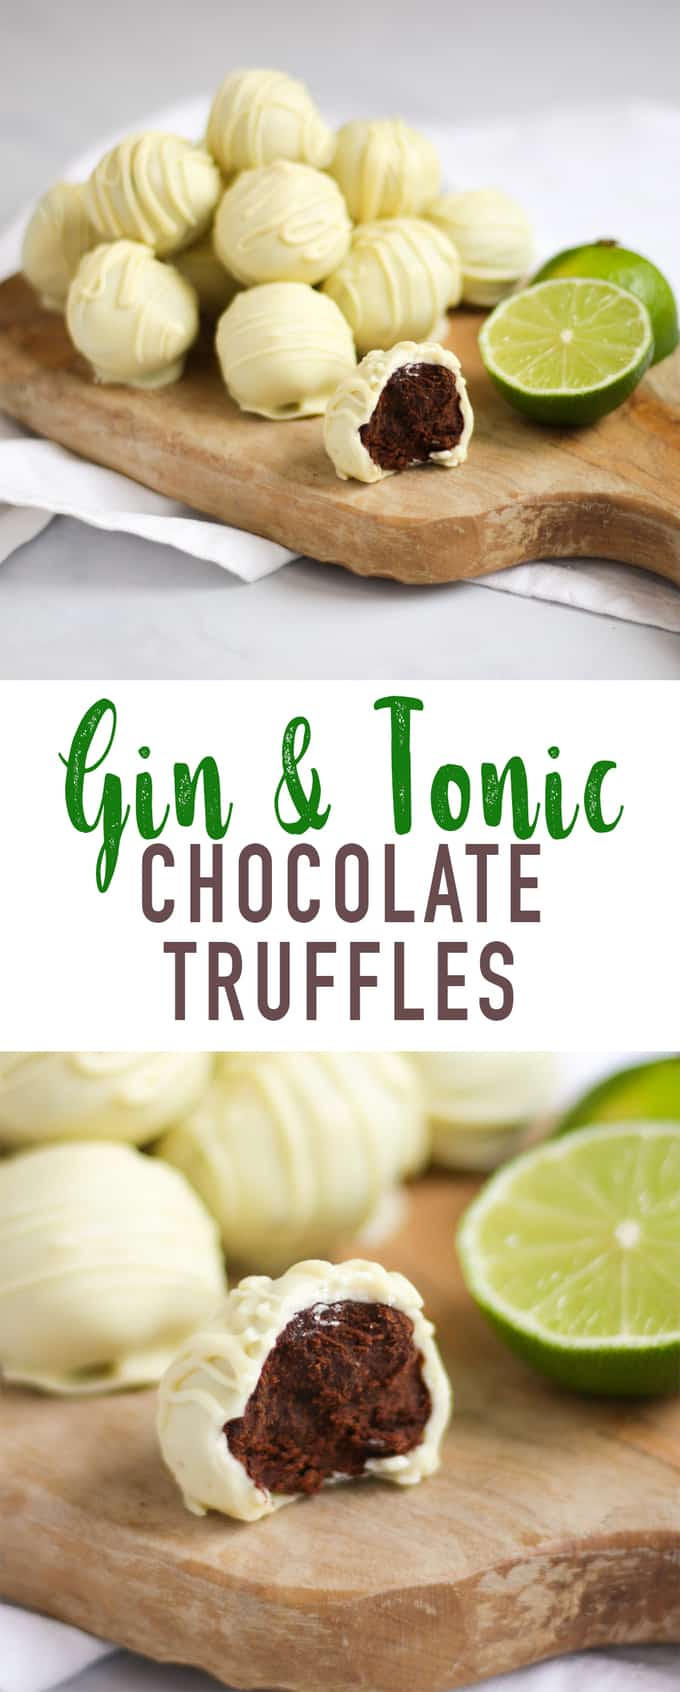 Gin and Tonic Truffles - the perfect homemade Christmas gift. Ideal for a gin or chocolate lover in your life! #ChristmasFood